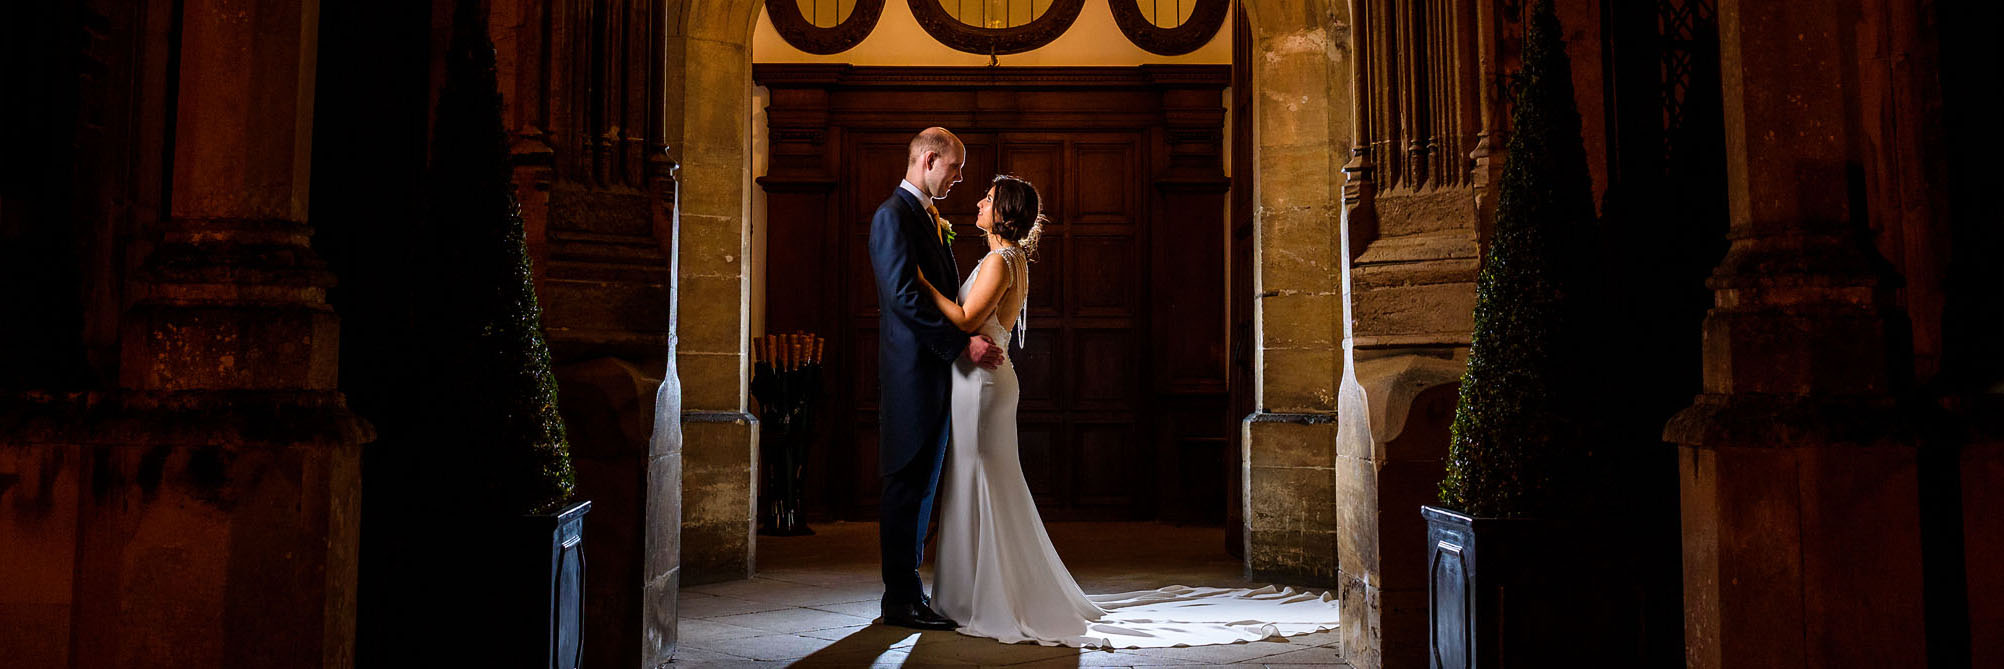 night time portrait of the bride and groom at Hengrave Hall